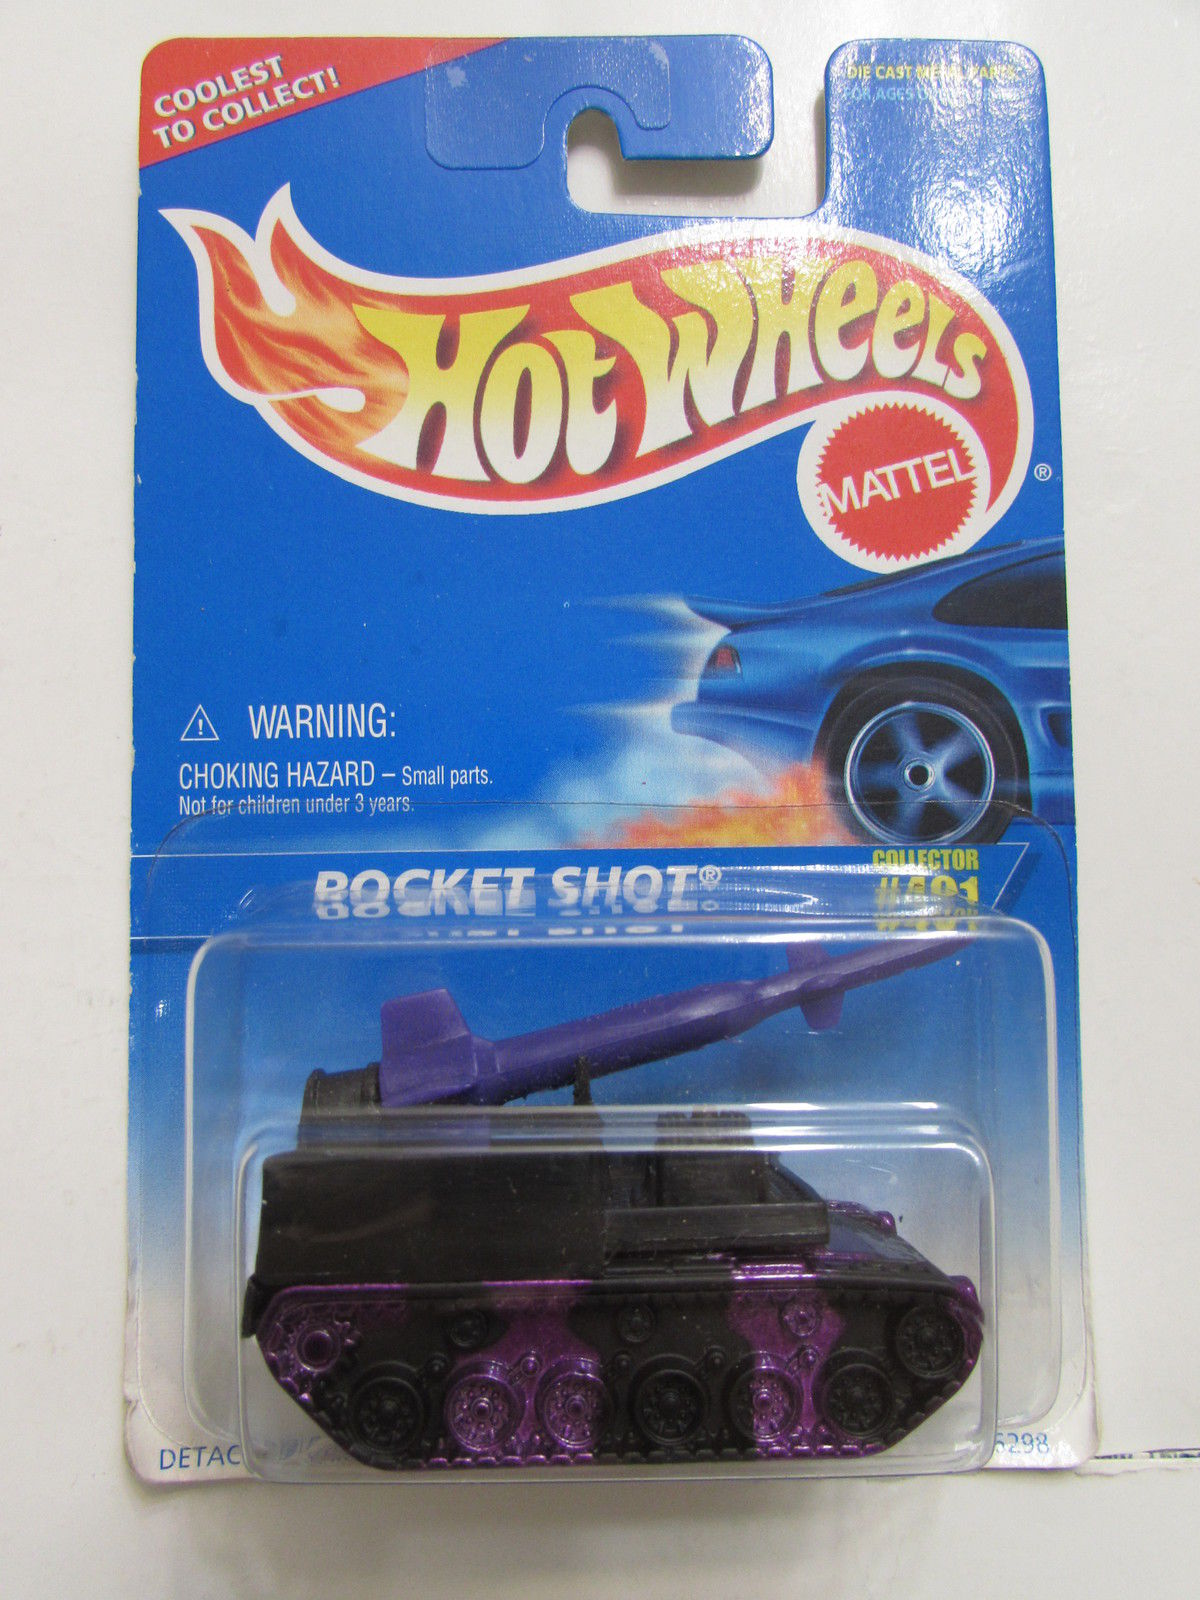 HOT WHEELS 1996 ROCKET SHOT #491